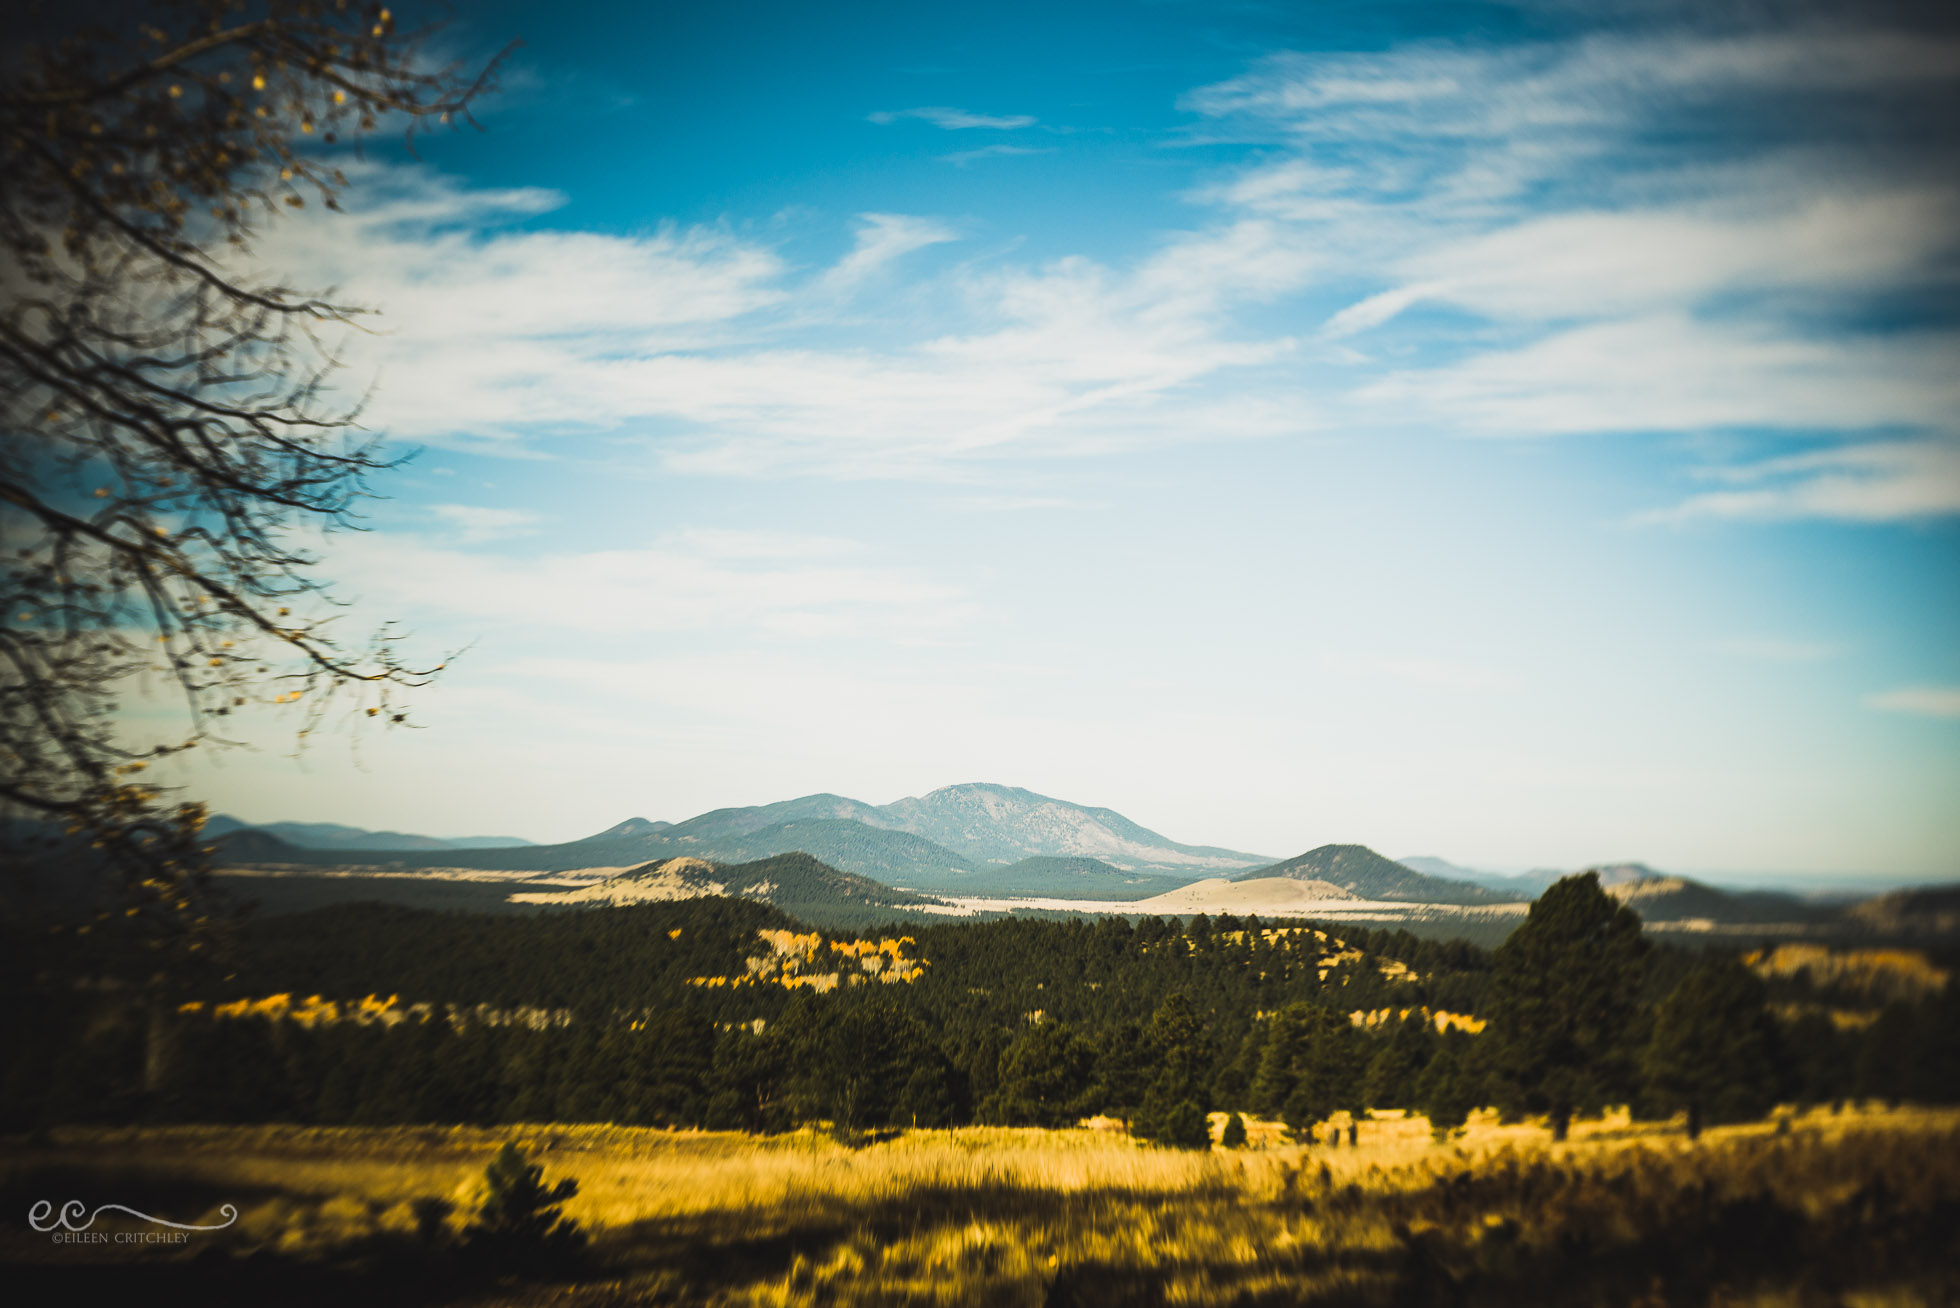 mountains_flagstaff_arizona_lensbaby_twist60-%22flagstaff-in-the-fall%22_by-eileen-critchley